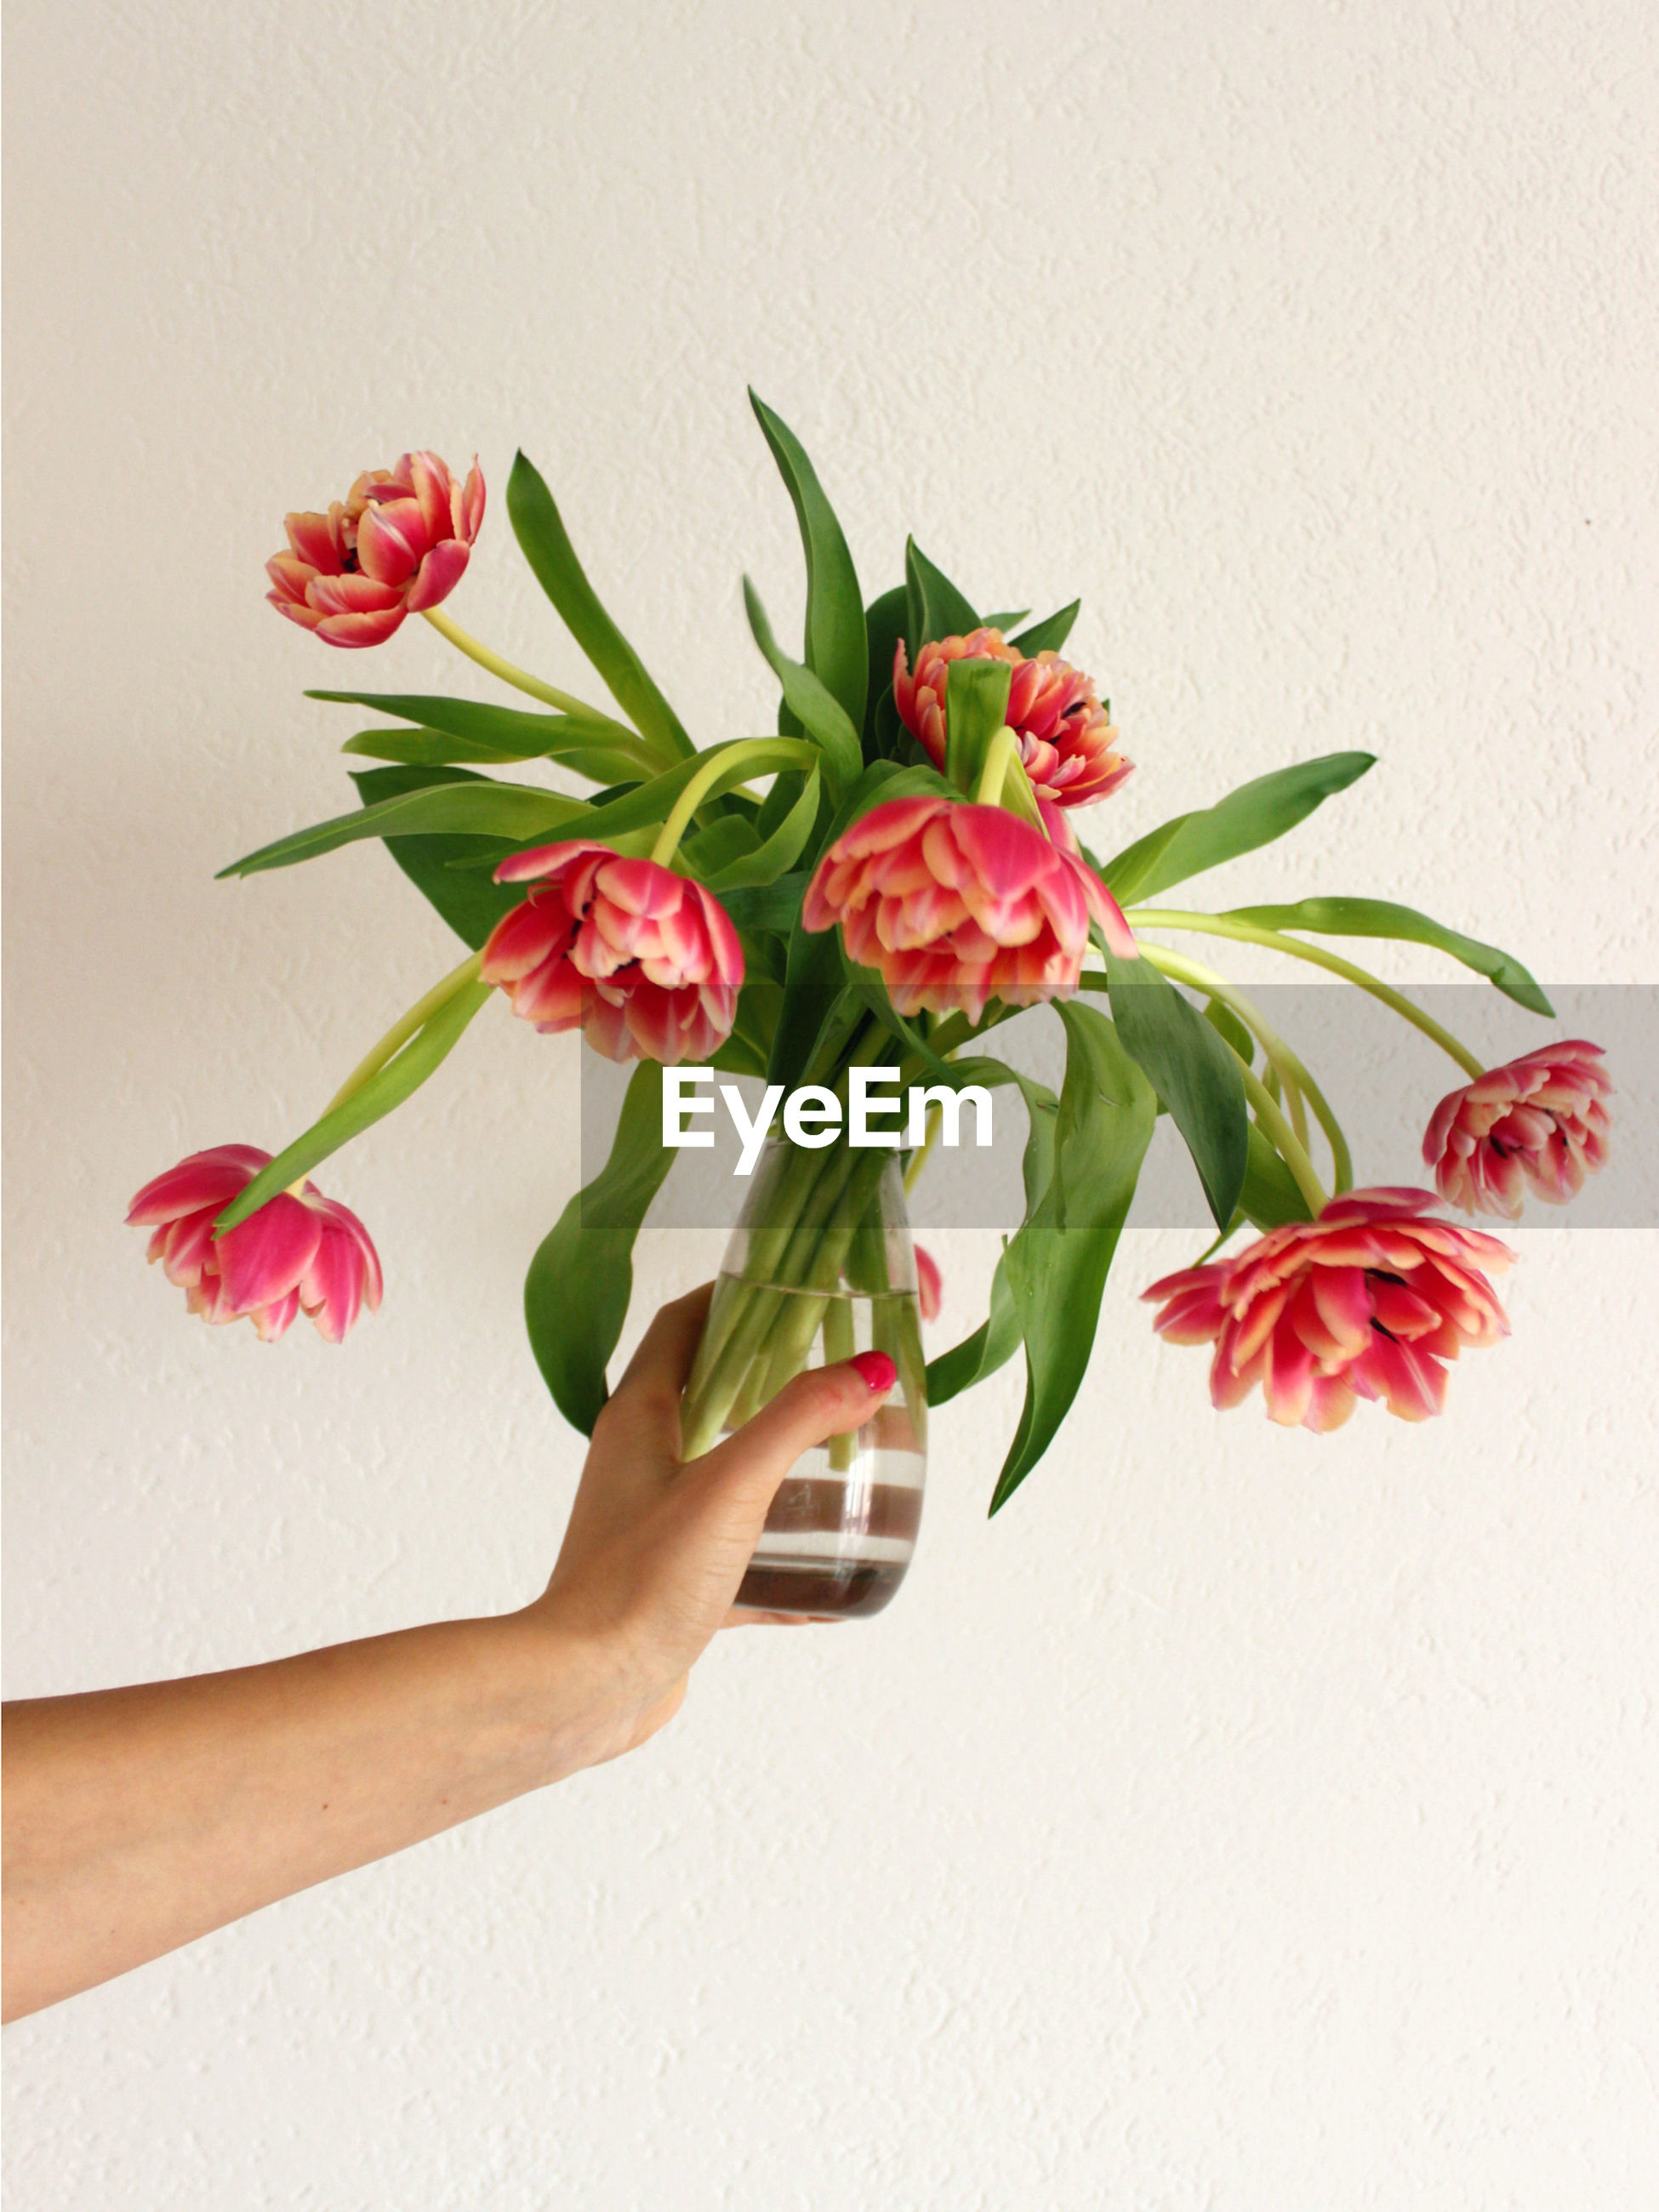 Cropped hand of woman holding pink flowers in vase by wall